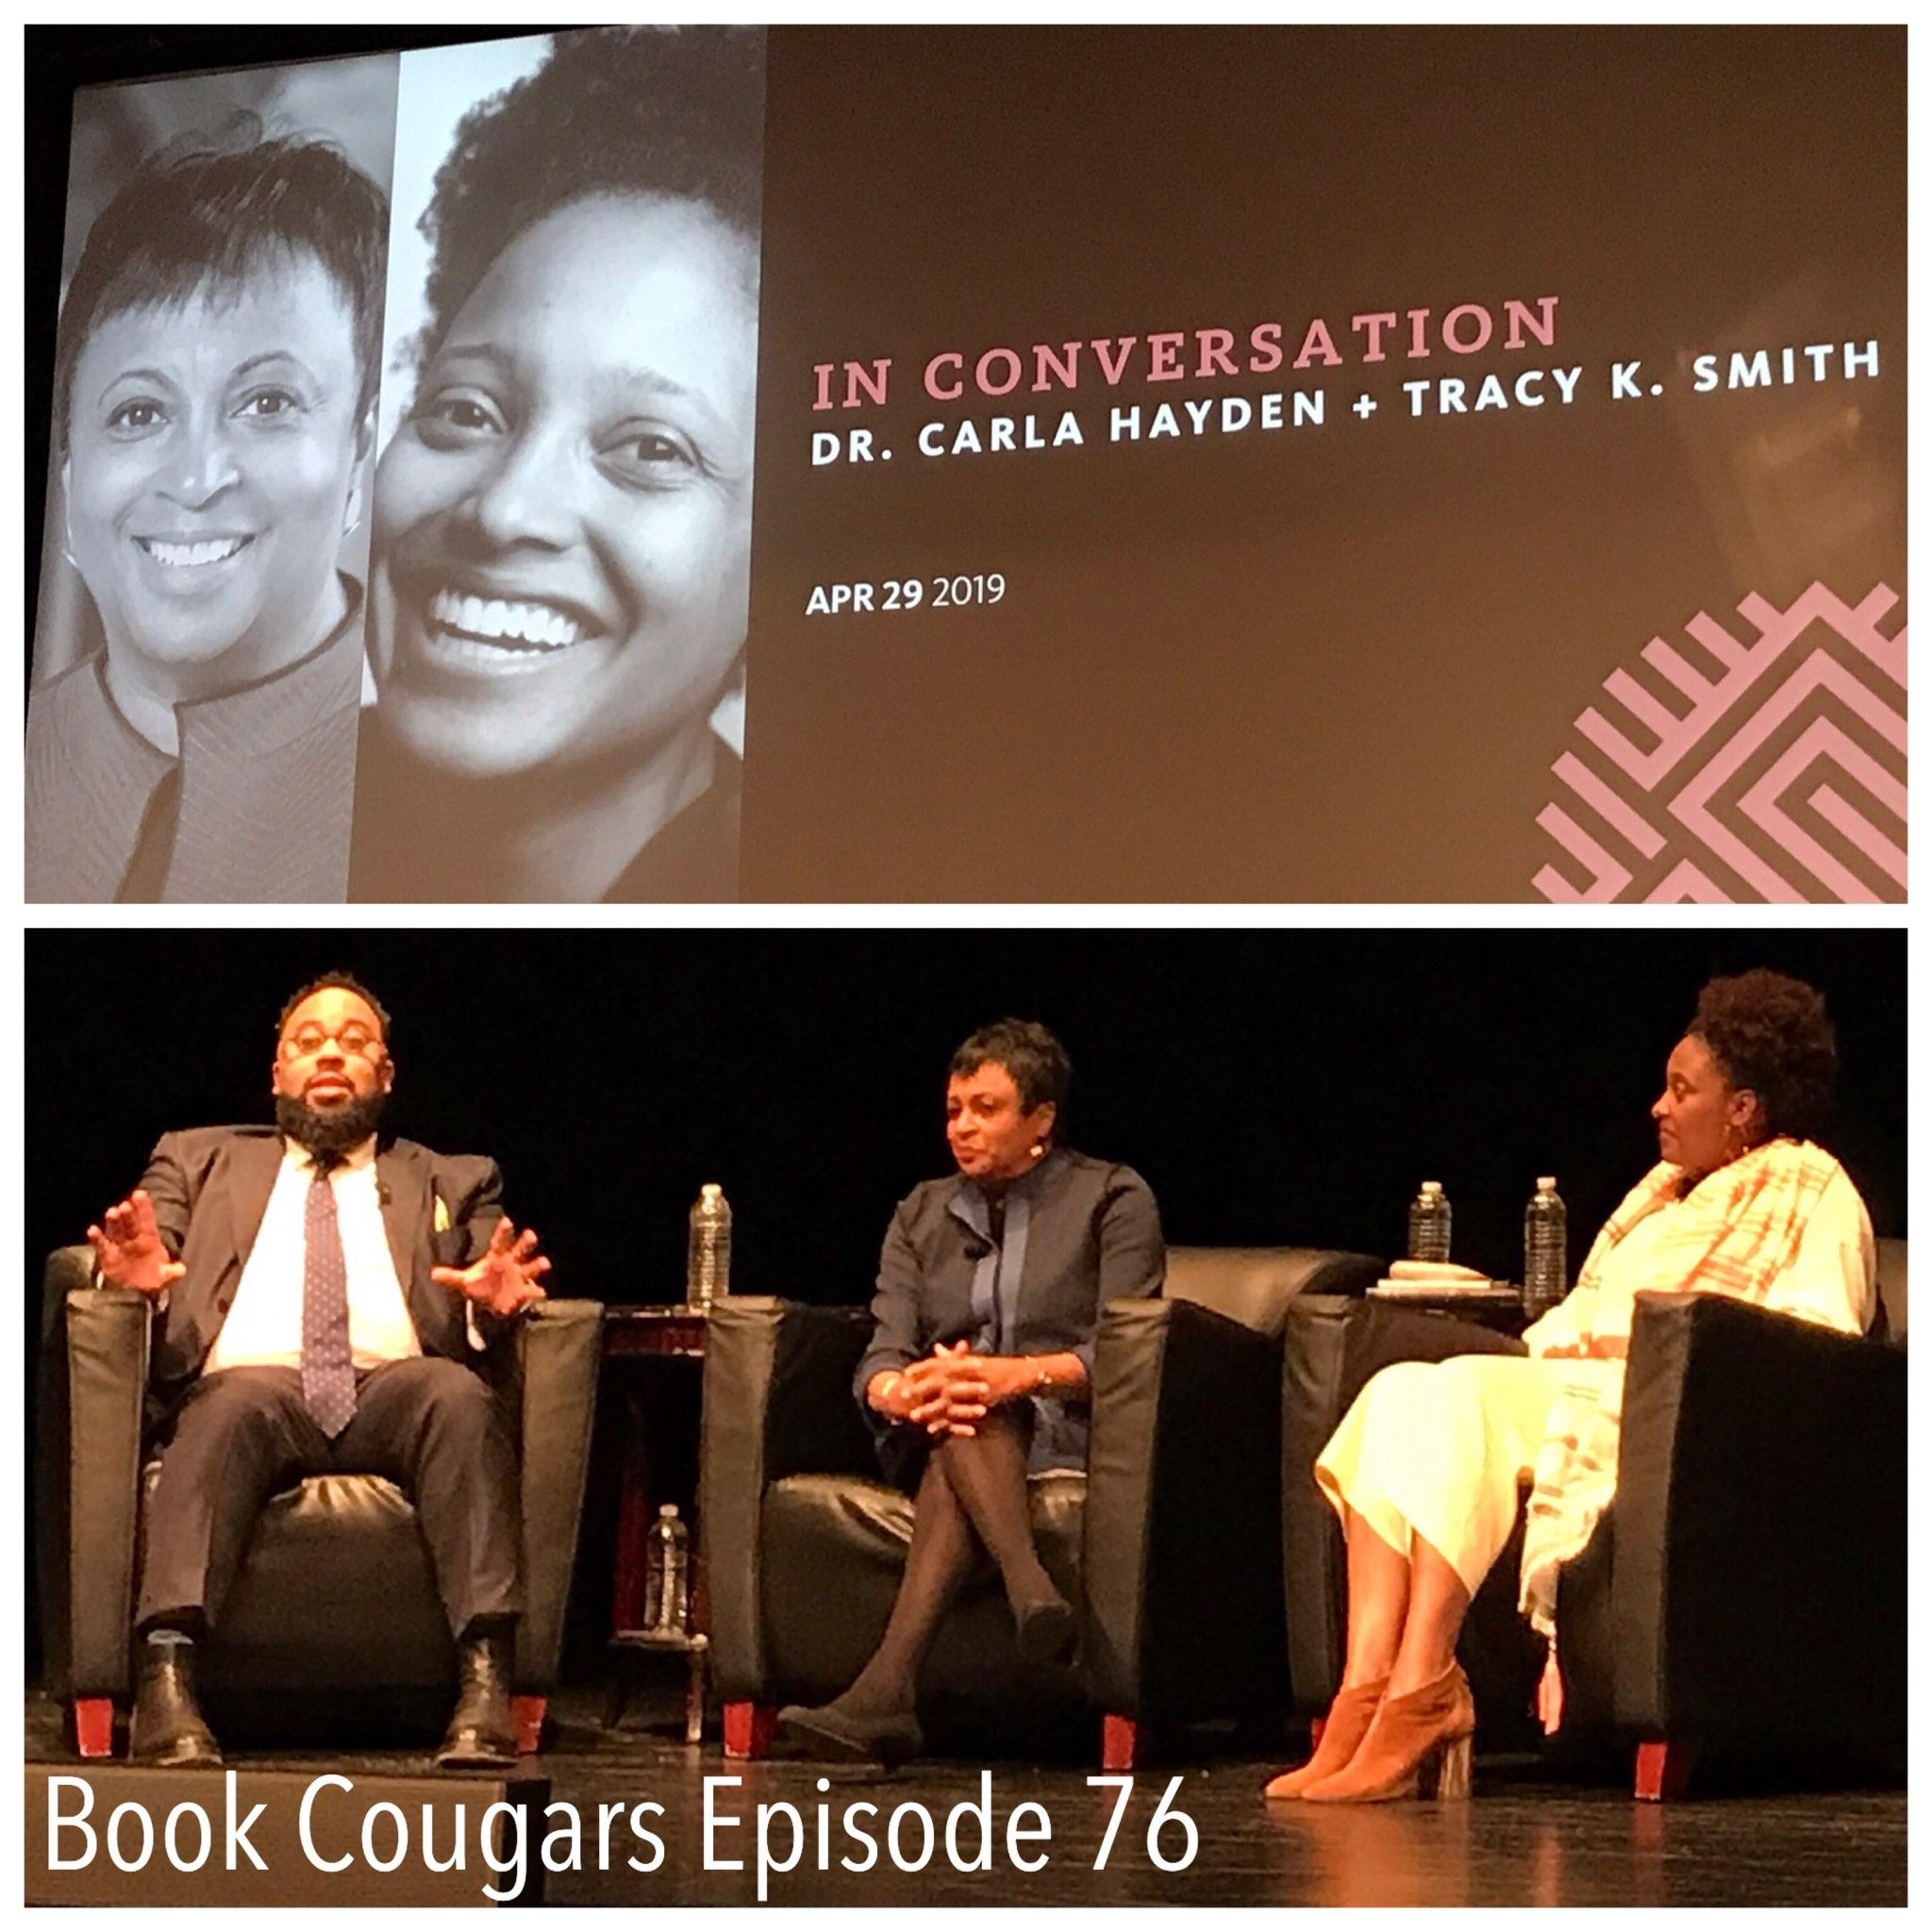 An evening at the  Schomburg Center for Research in Black Culture  featuring Dr. Carla Hayden, Tracy K. Smith, and Kevin Young.